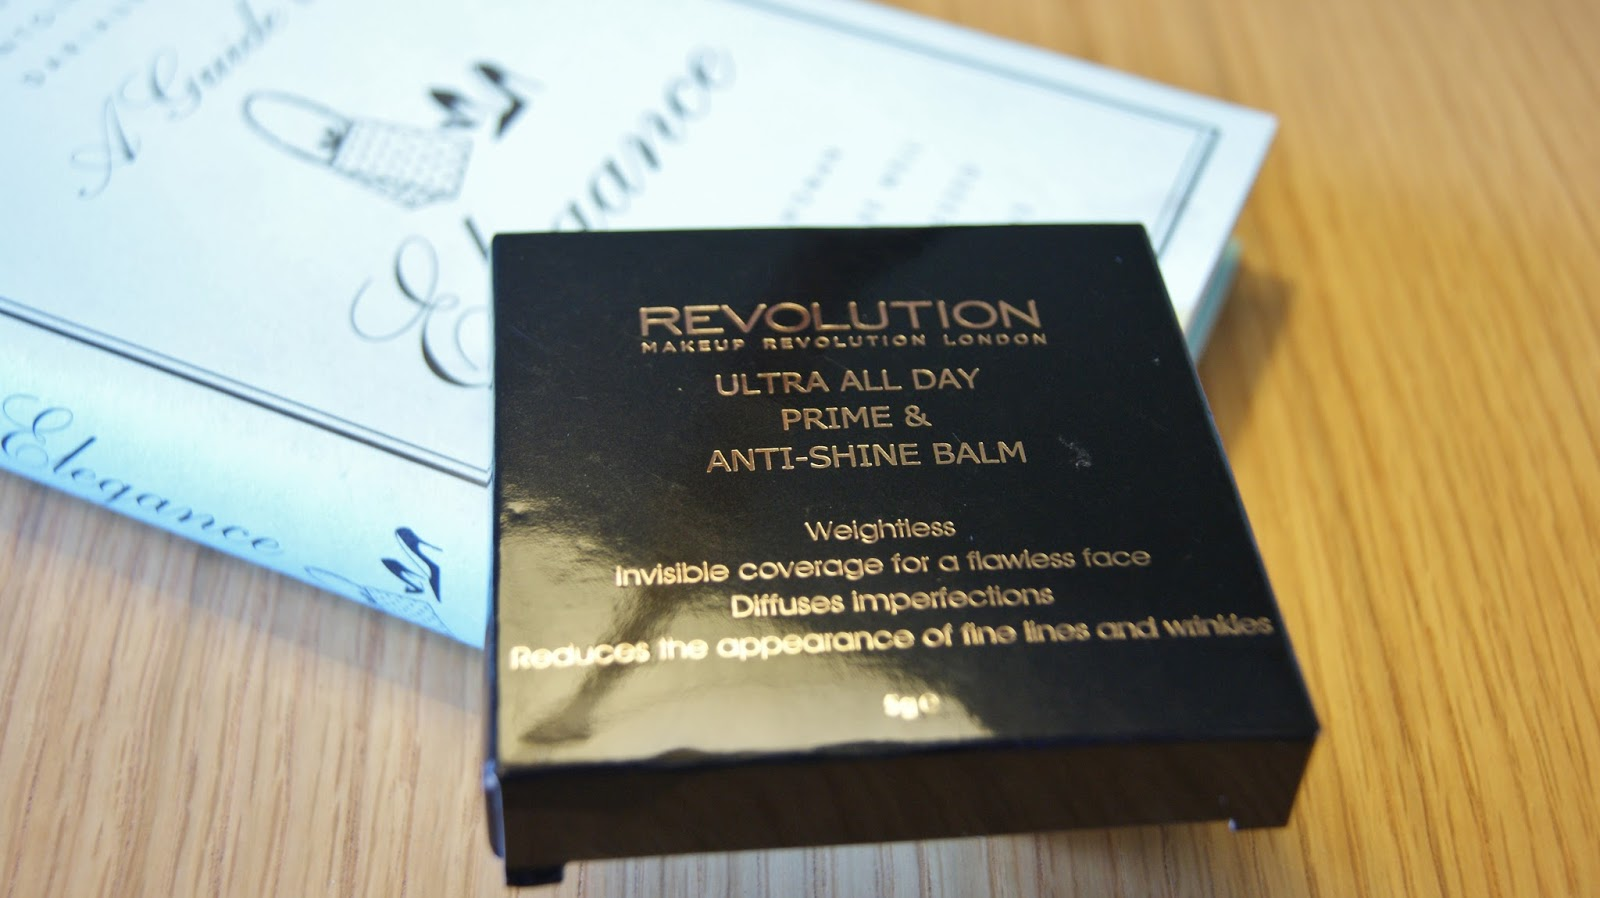 Makeup Revolution All Day Prime & Anti-Shine Balm Packaging